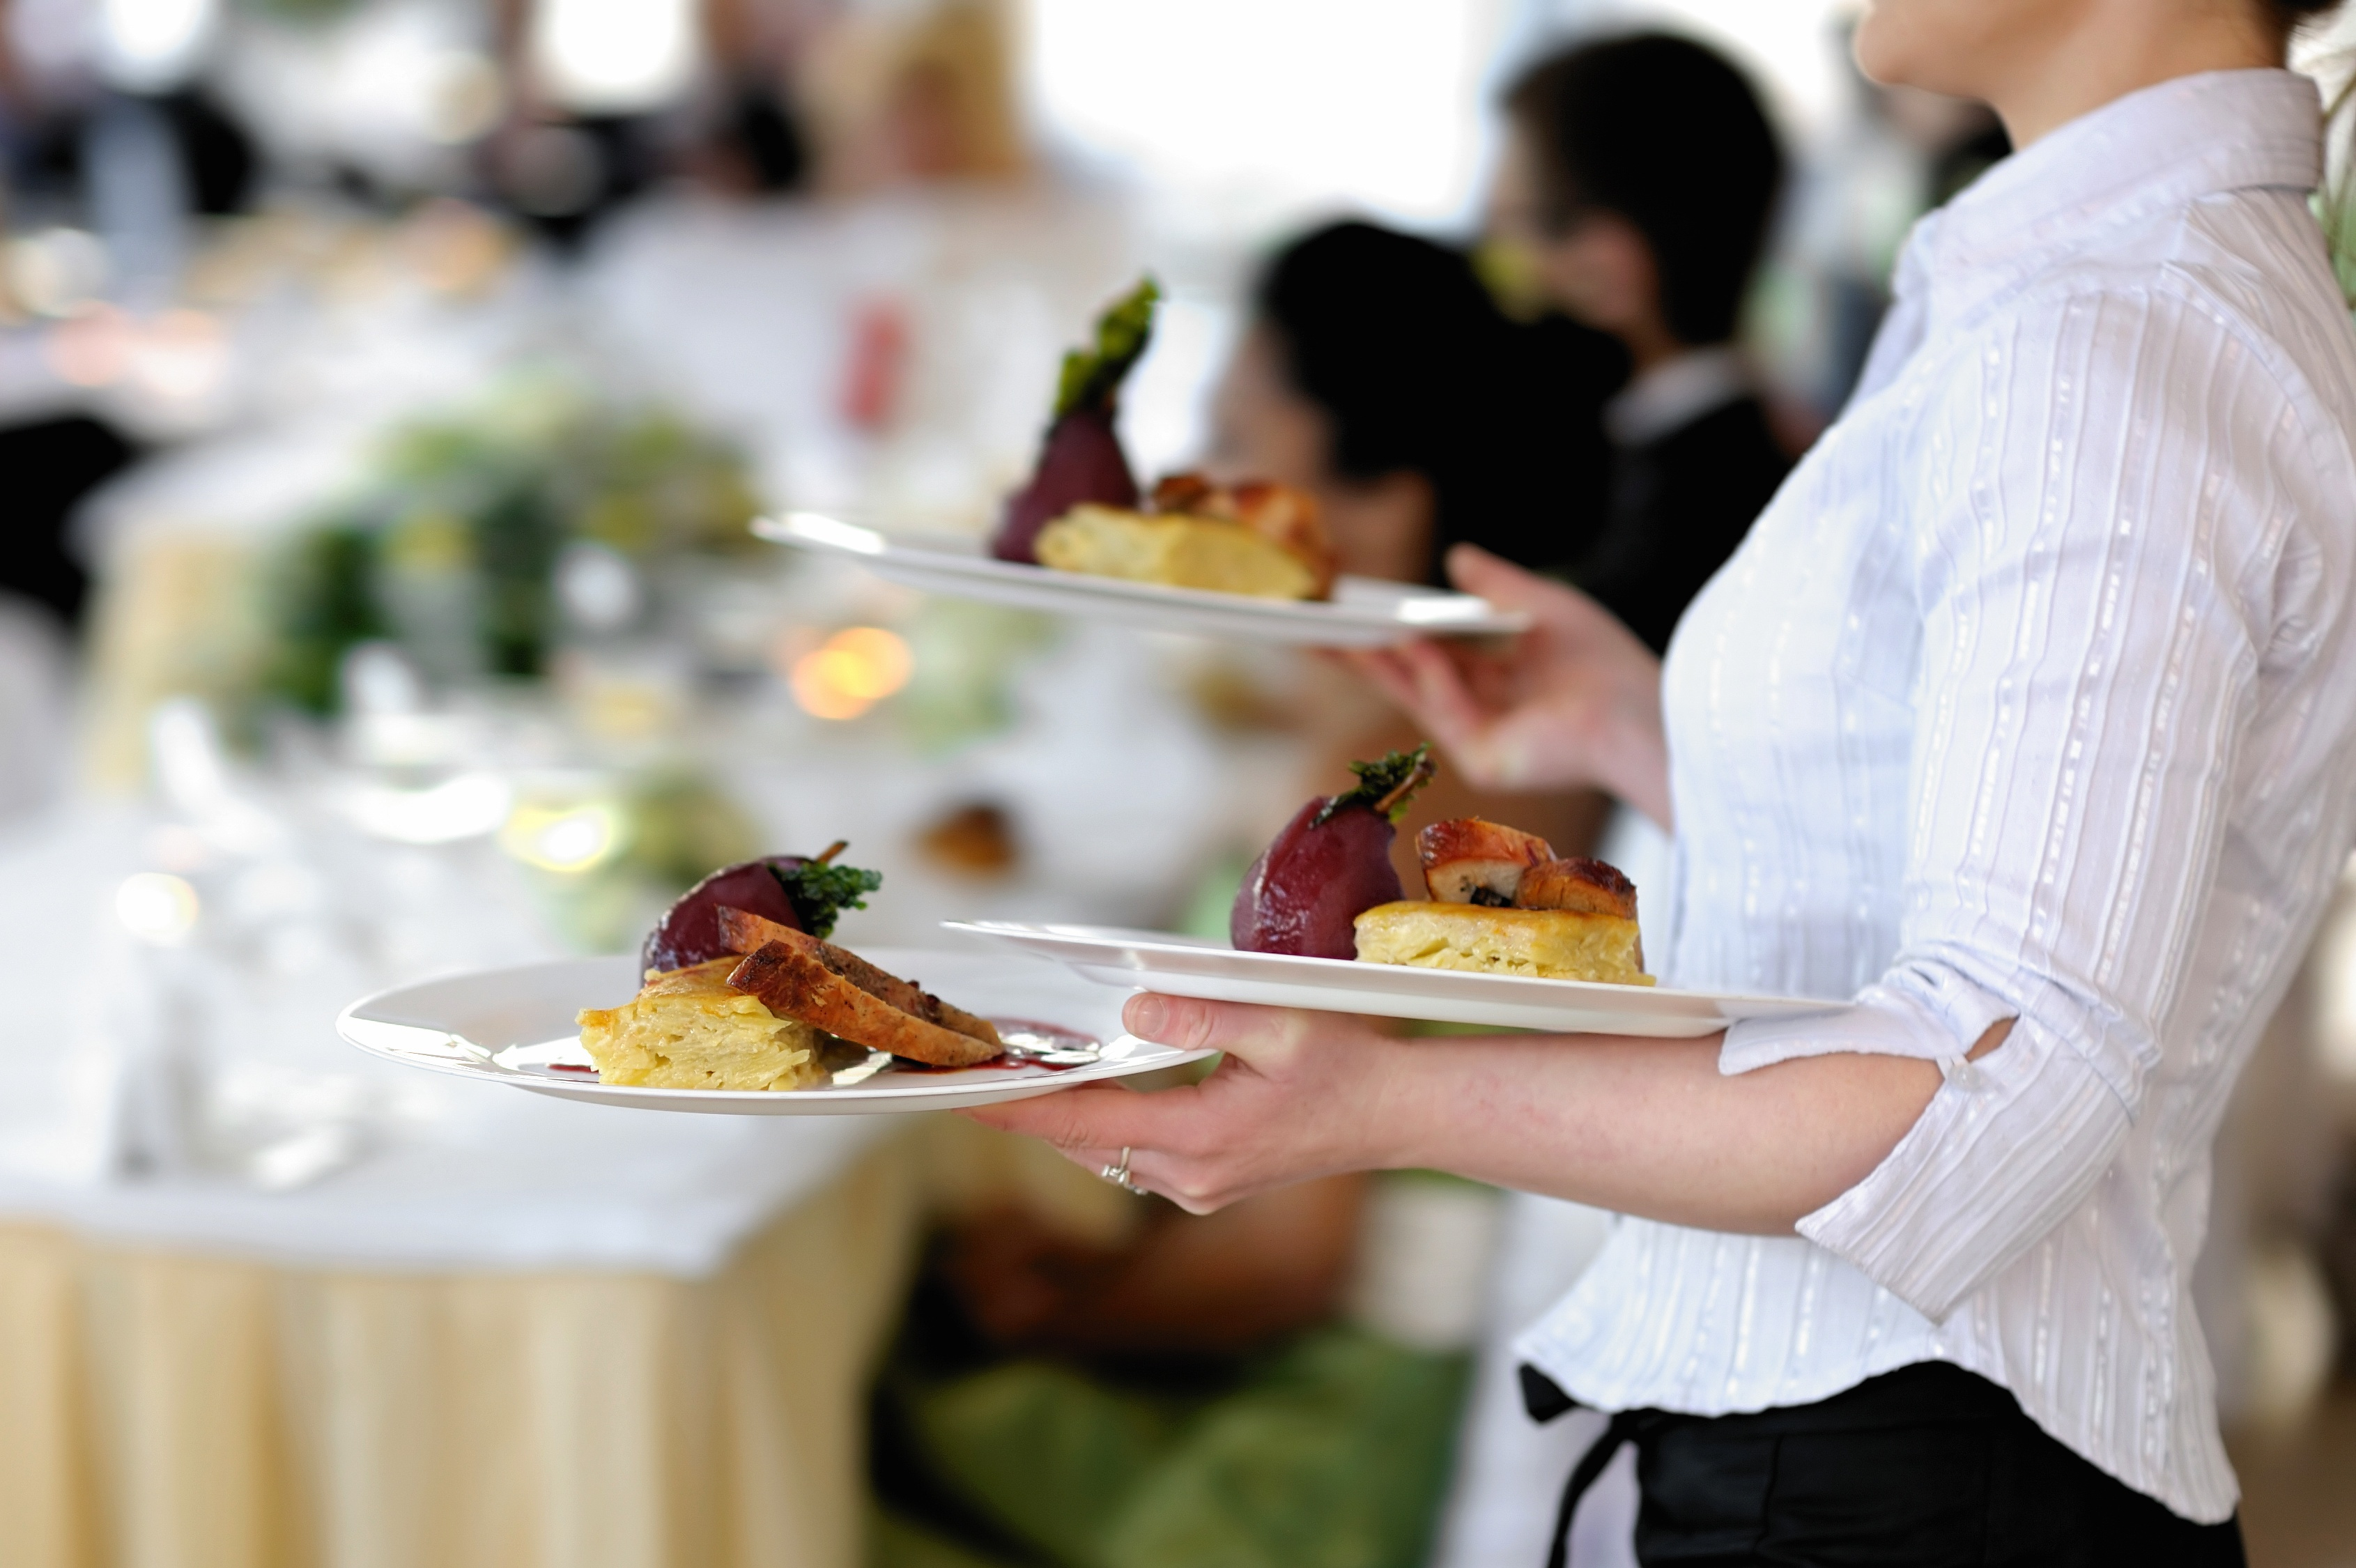 The Cost is High When it Comes to Foodborne Illness